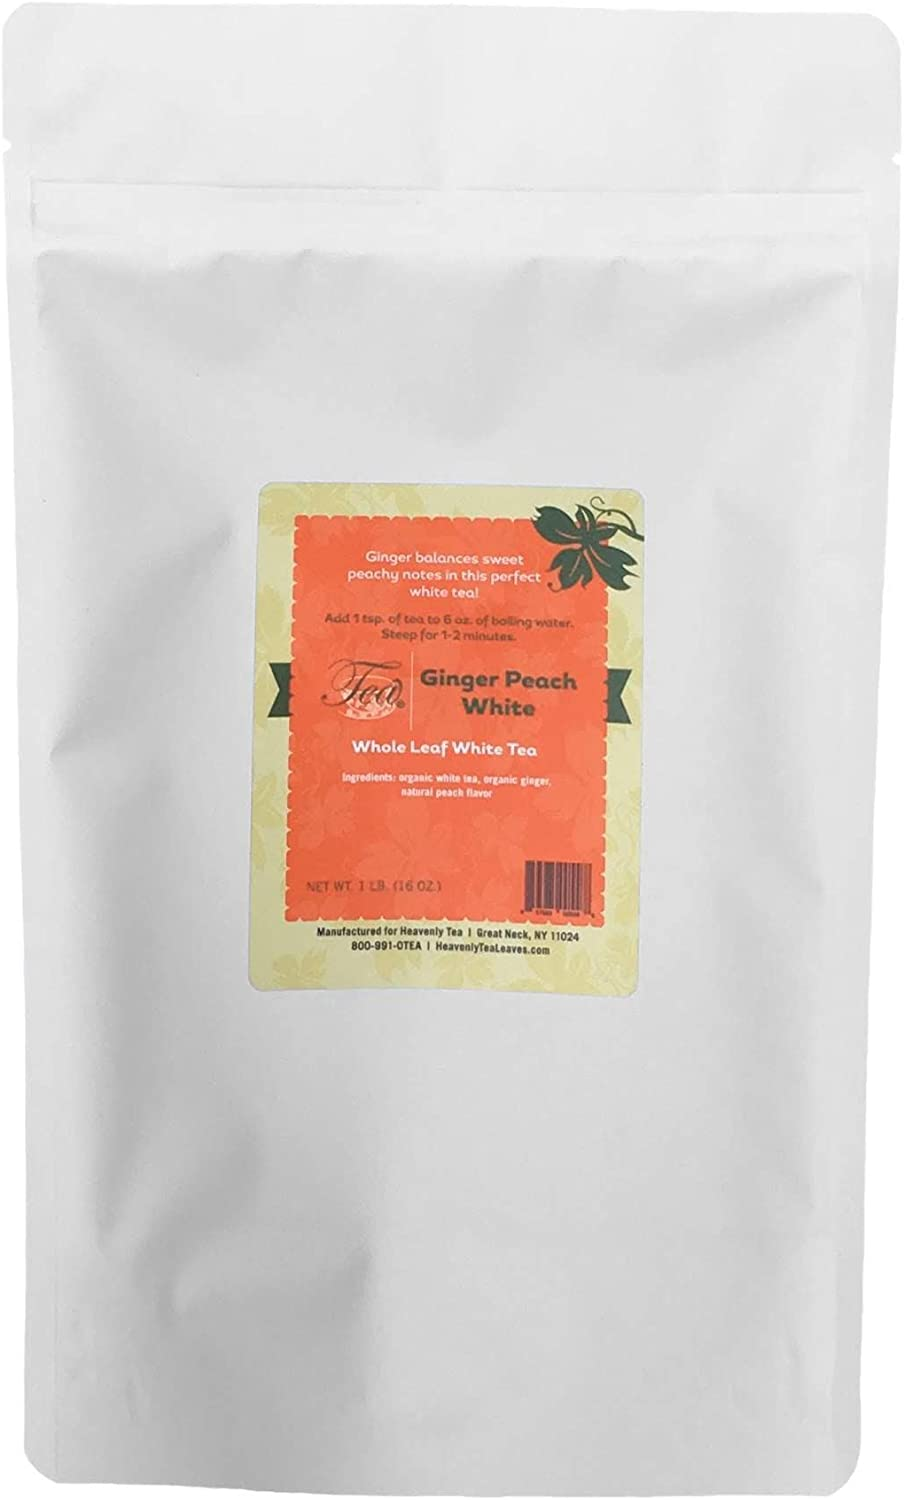 Heavenly Tea Leaves Ginger Peach White Tea, Bulk Loose Leaf Tea, 1 Lb. Resealable Pouch